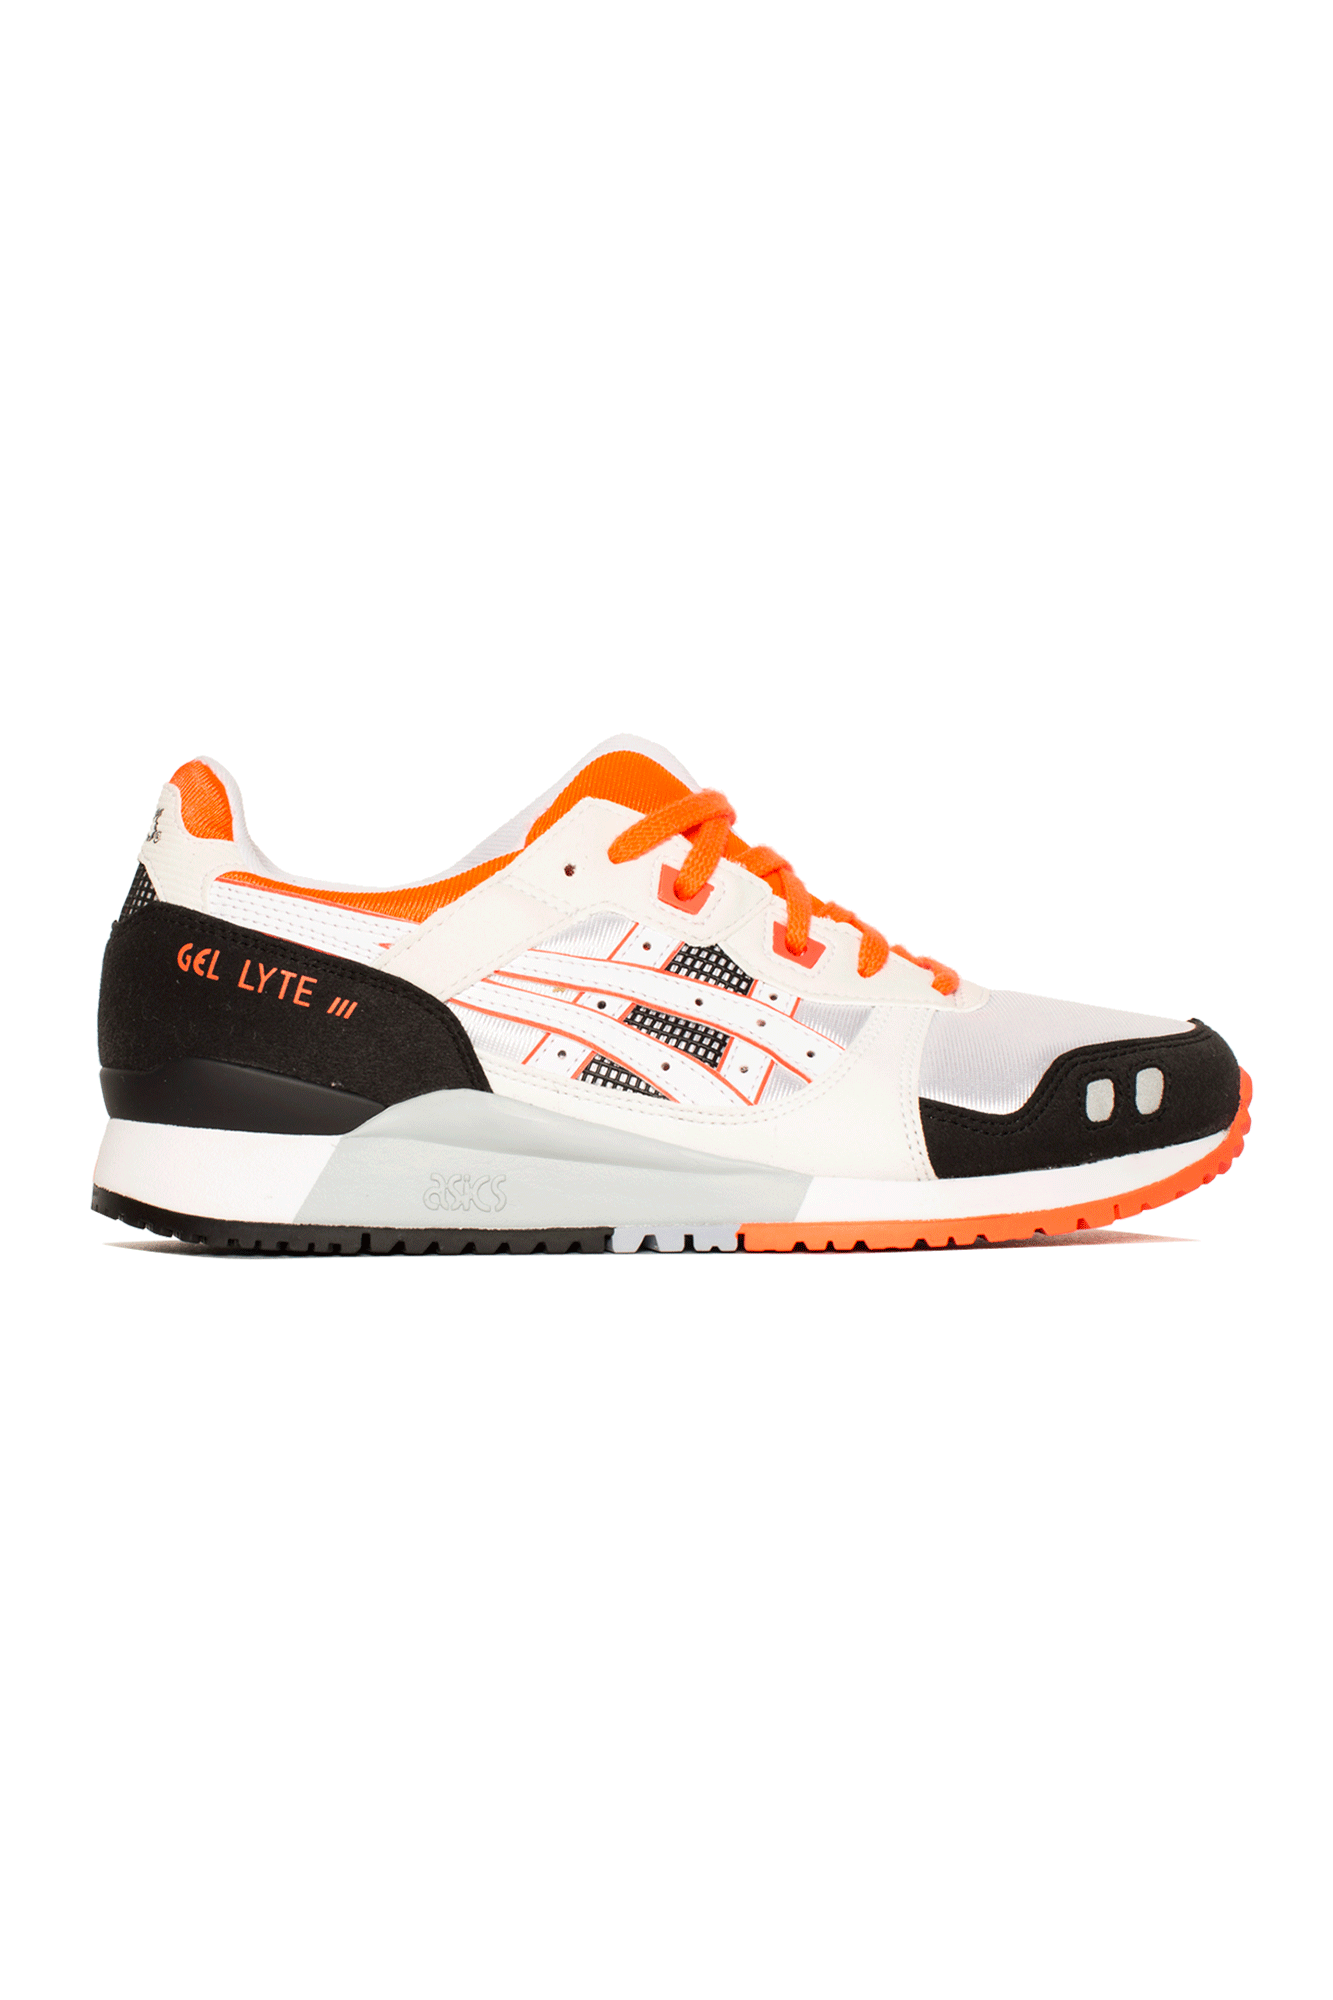 Gel Lyte III OG White